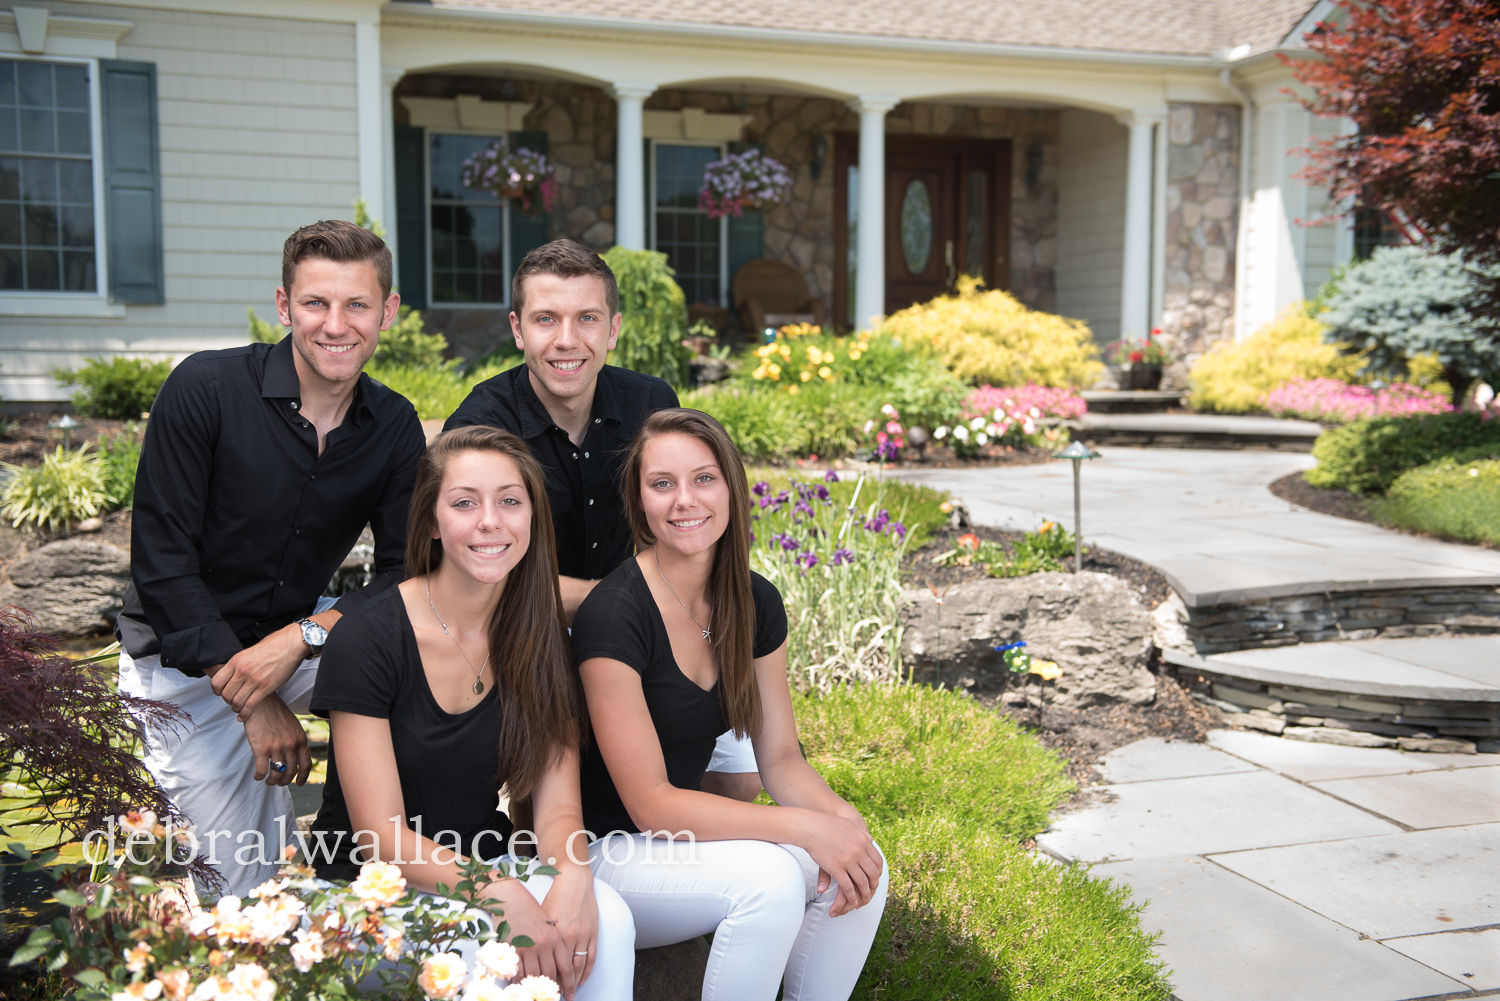 Penfield NY Family Photos professional landscaping